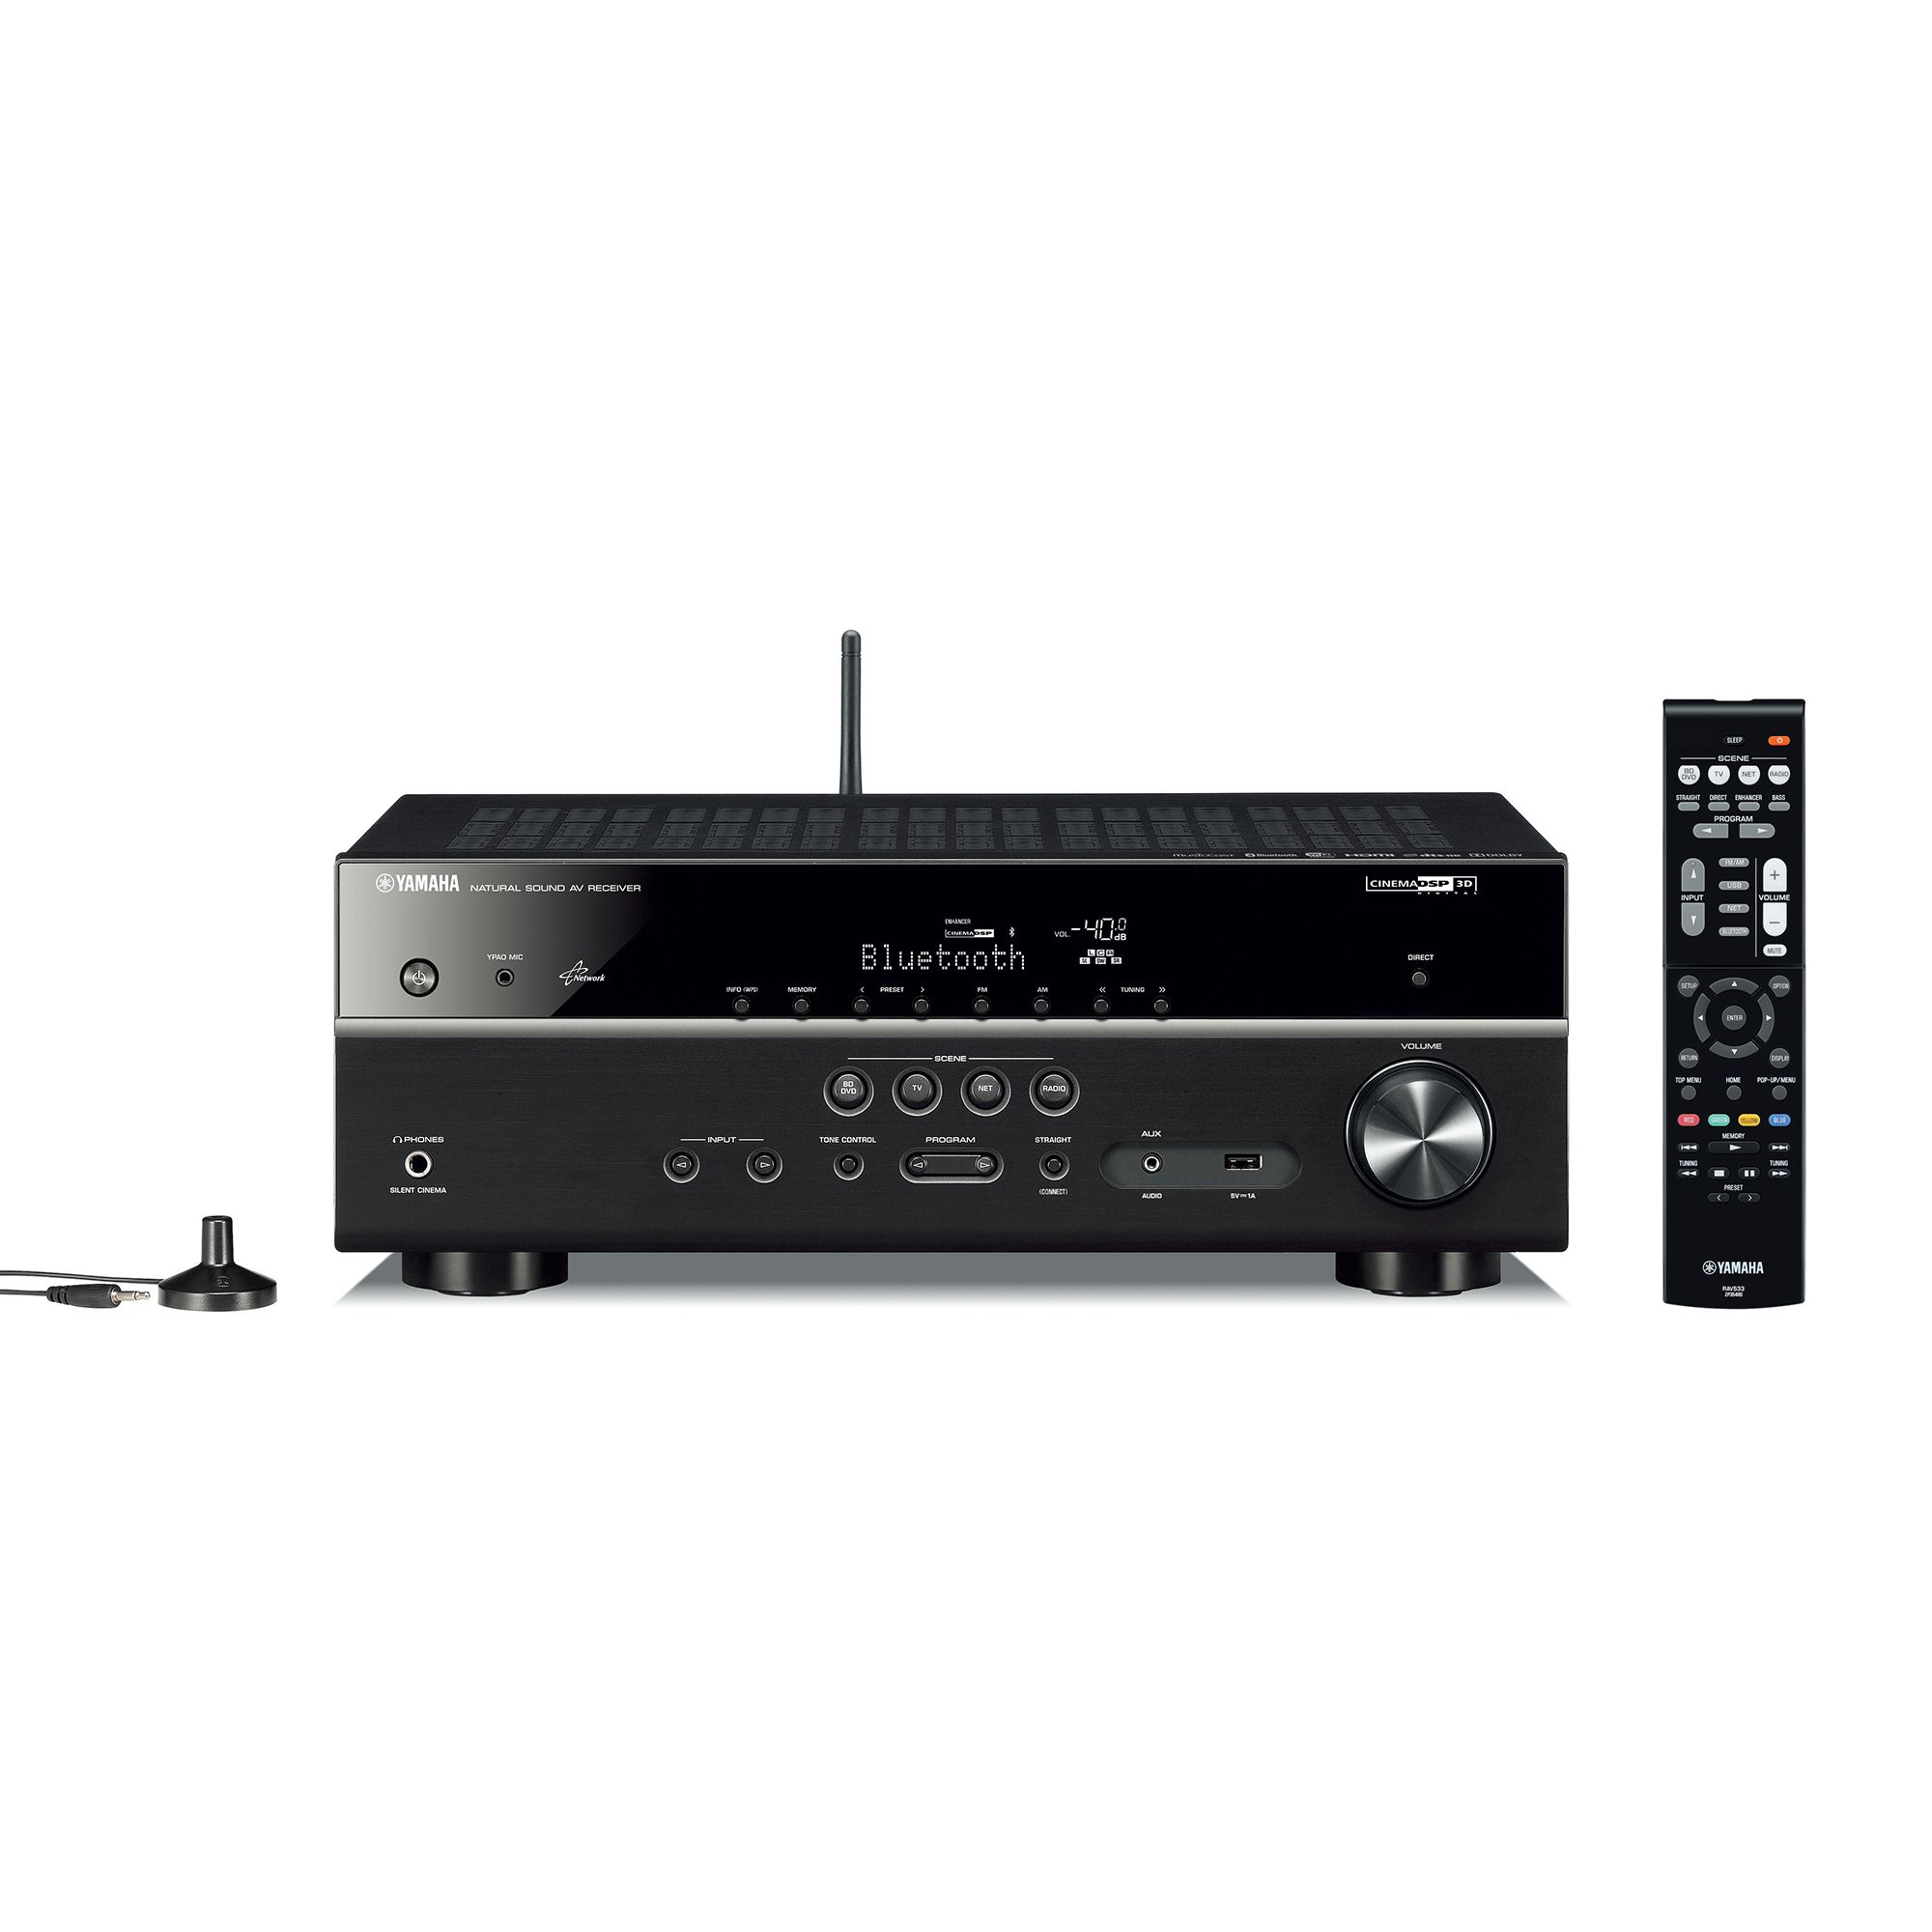 YHT-5920UBL - Features - Home Theater Systems - Audio & Visual ...